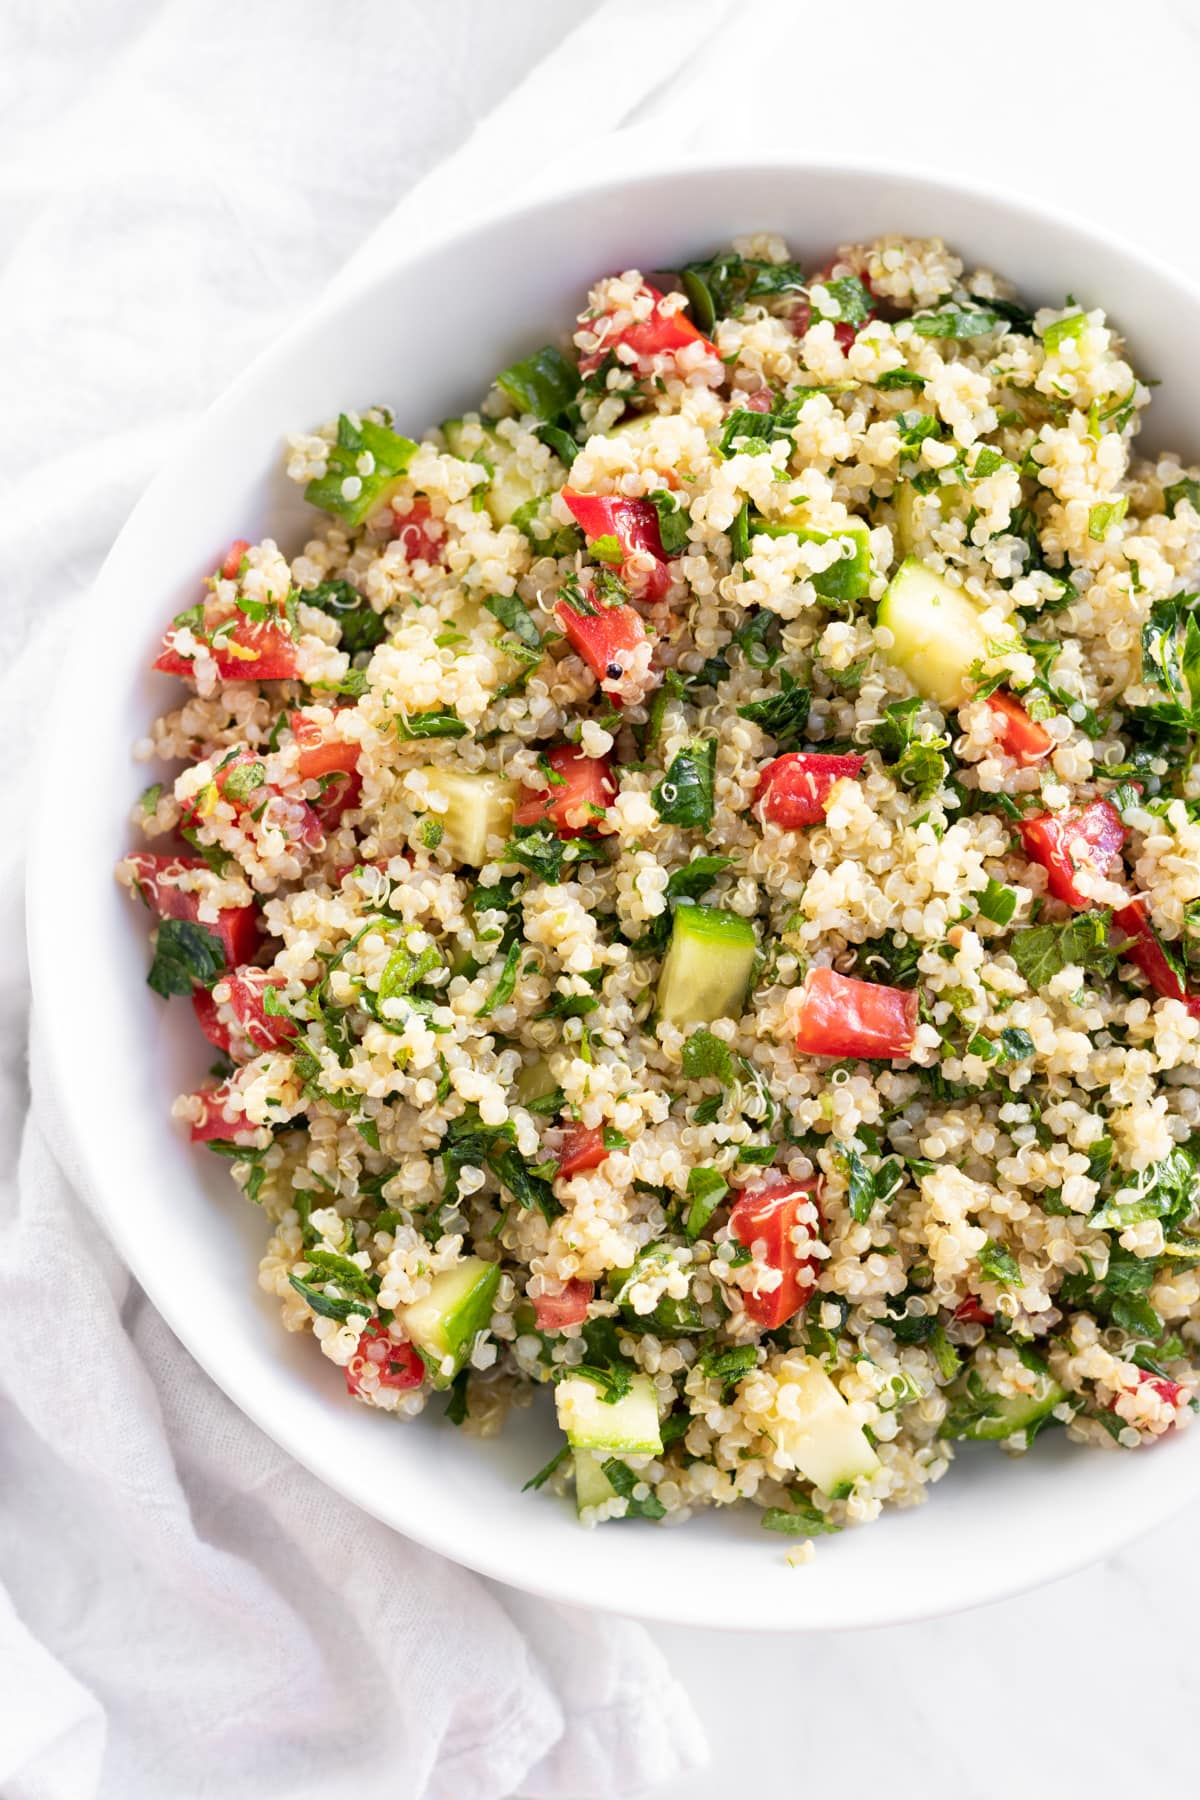 White quinoa salad studded with diced cucumber, roma tomato, and flecks of parsley and mint.